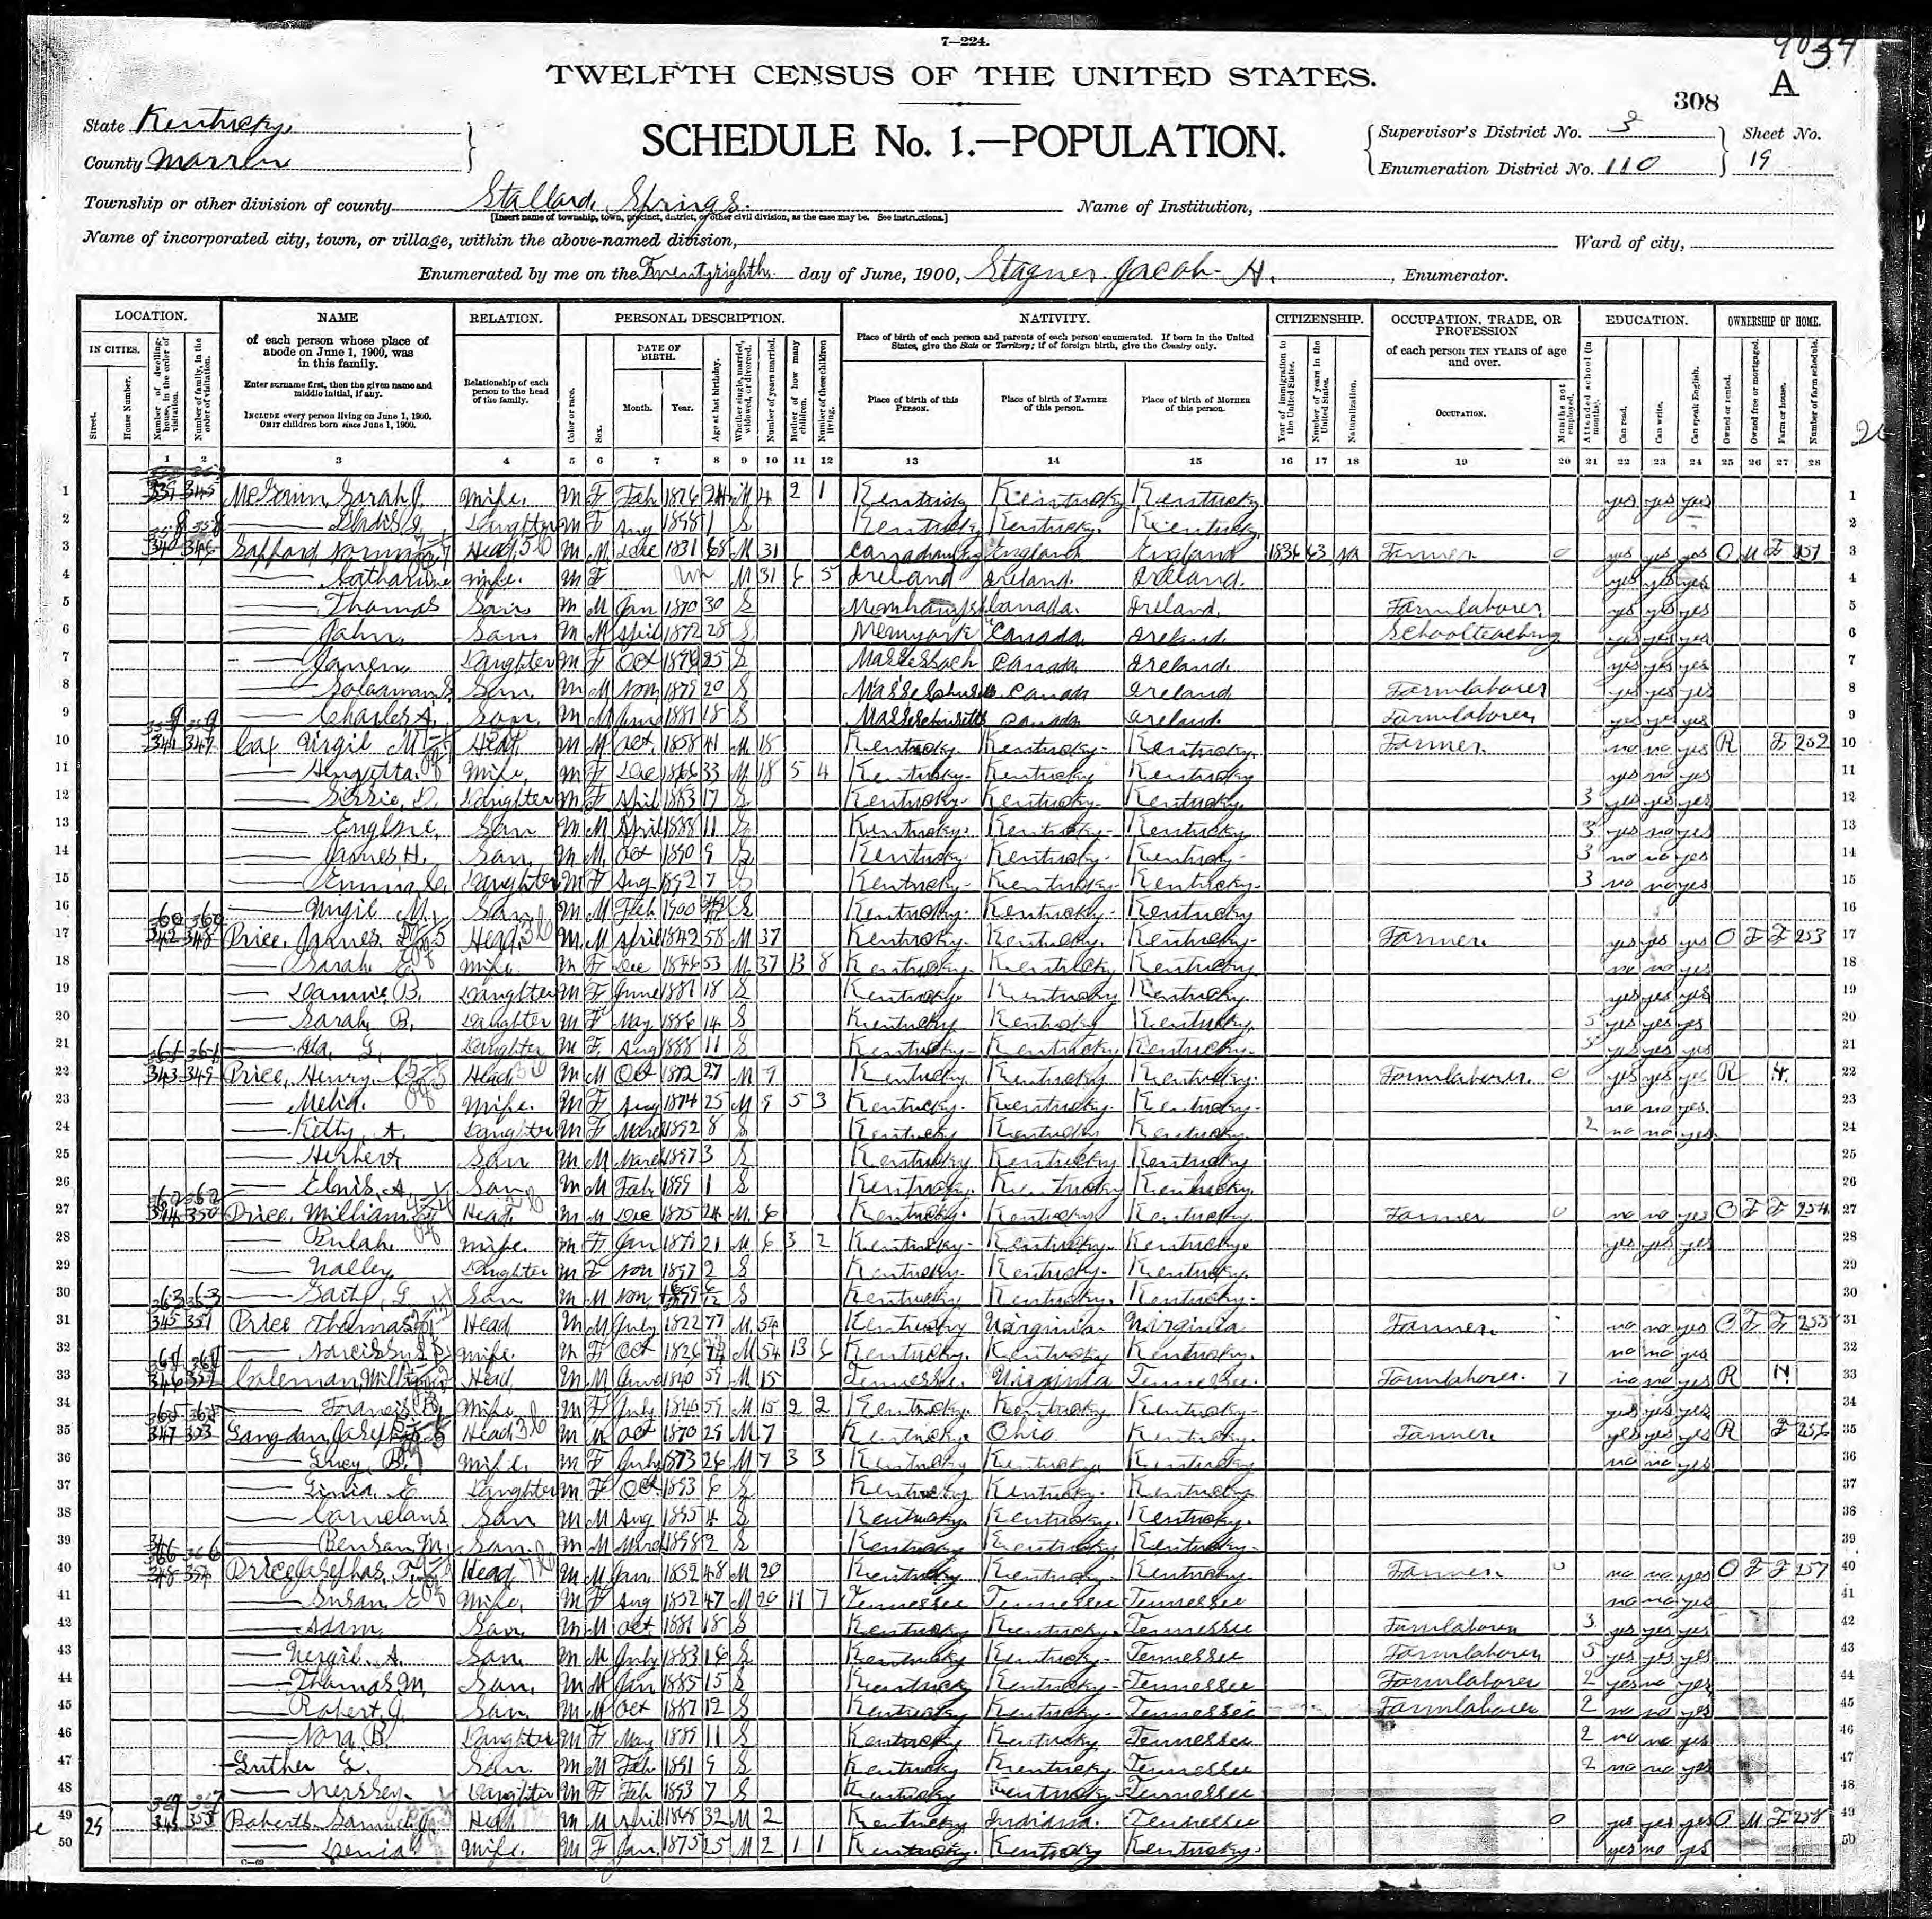 William Price discovered in 1900 United States Federal